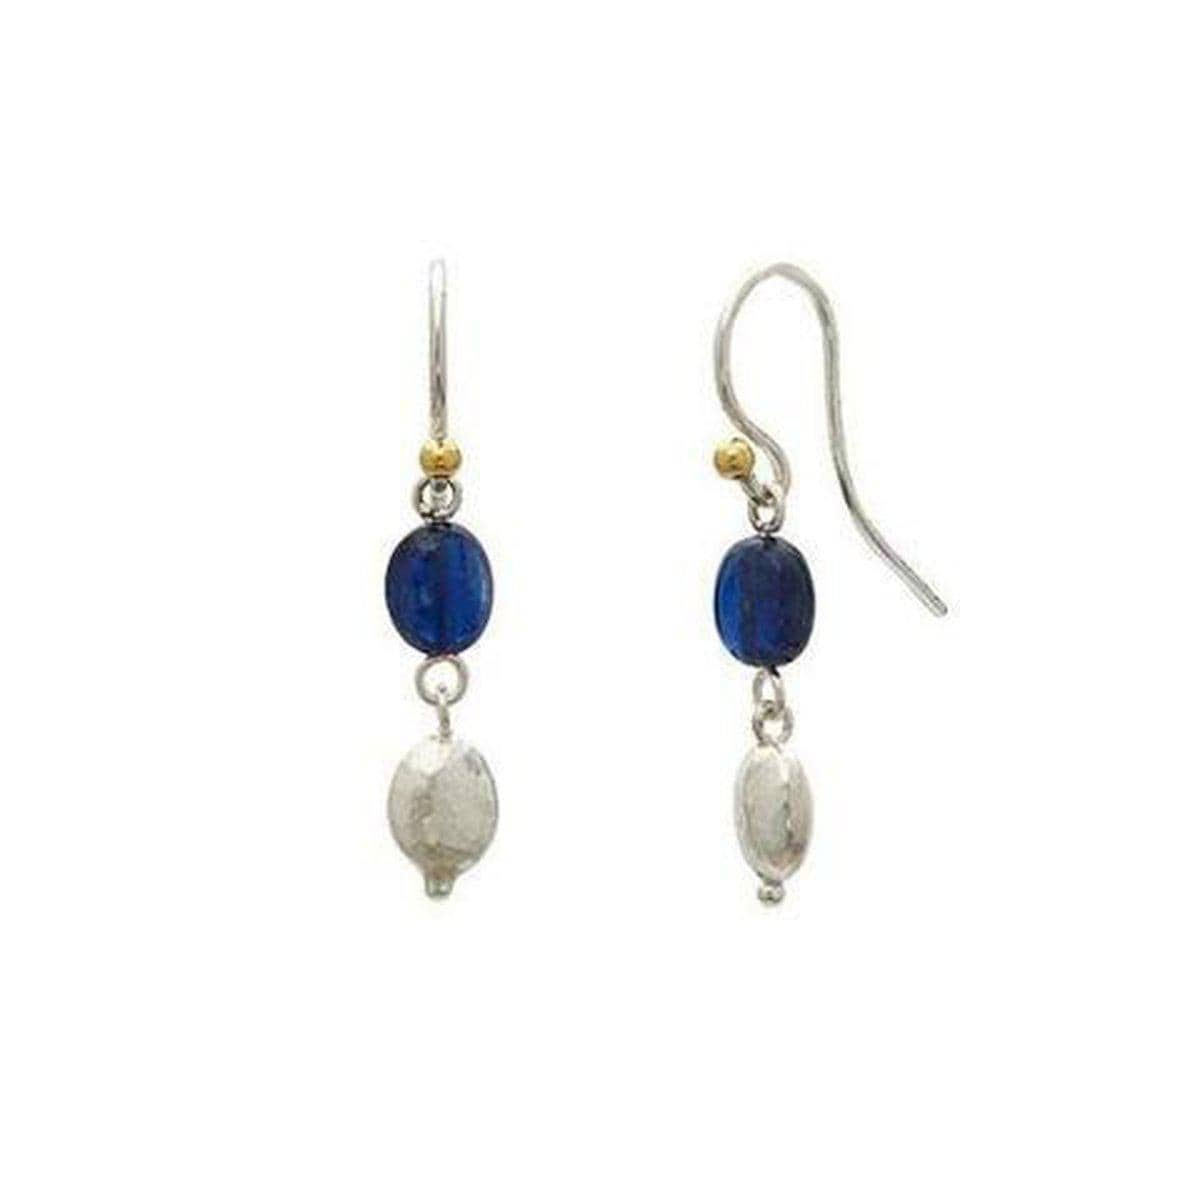 Spell Sterling Silver Kyanite Earrings - EHSSG-NGS-1KYB-DD-GURHAN-Renee Taylor Gallery